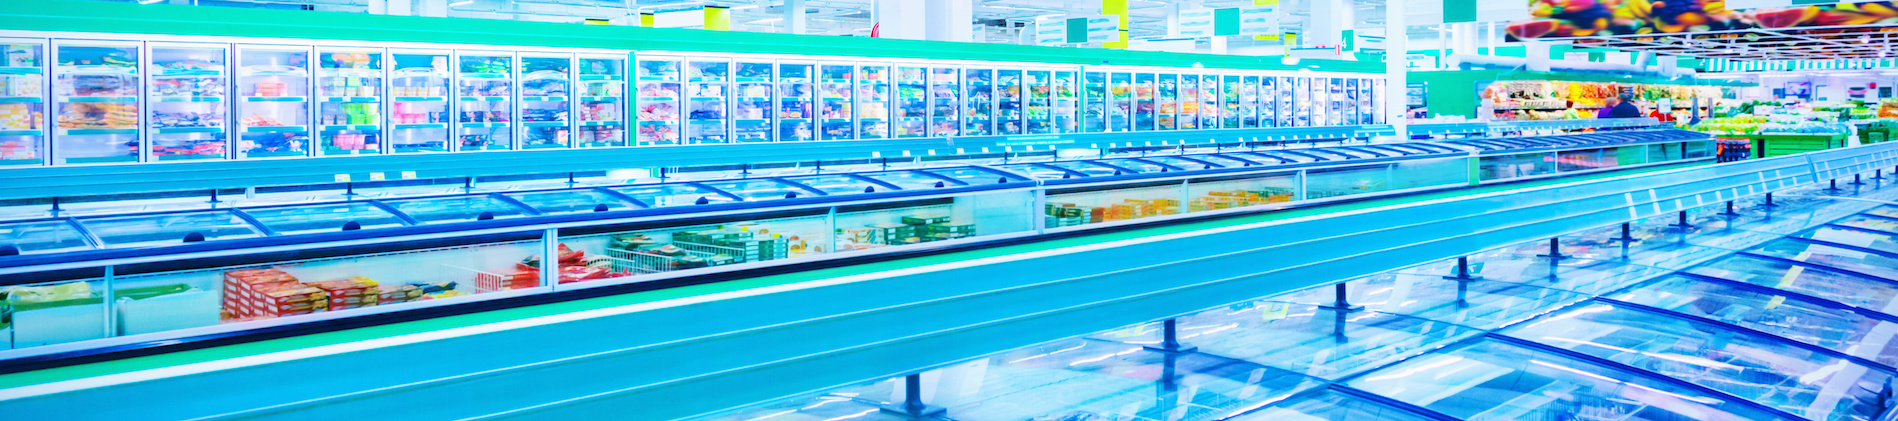 Commercial Refrigeration Cool Rooms Sydney Total Climate Solutions - Cool rooms